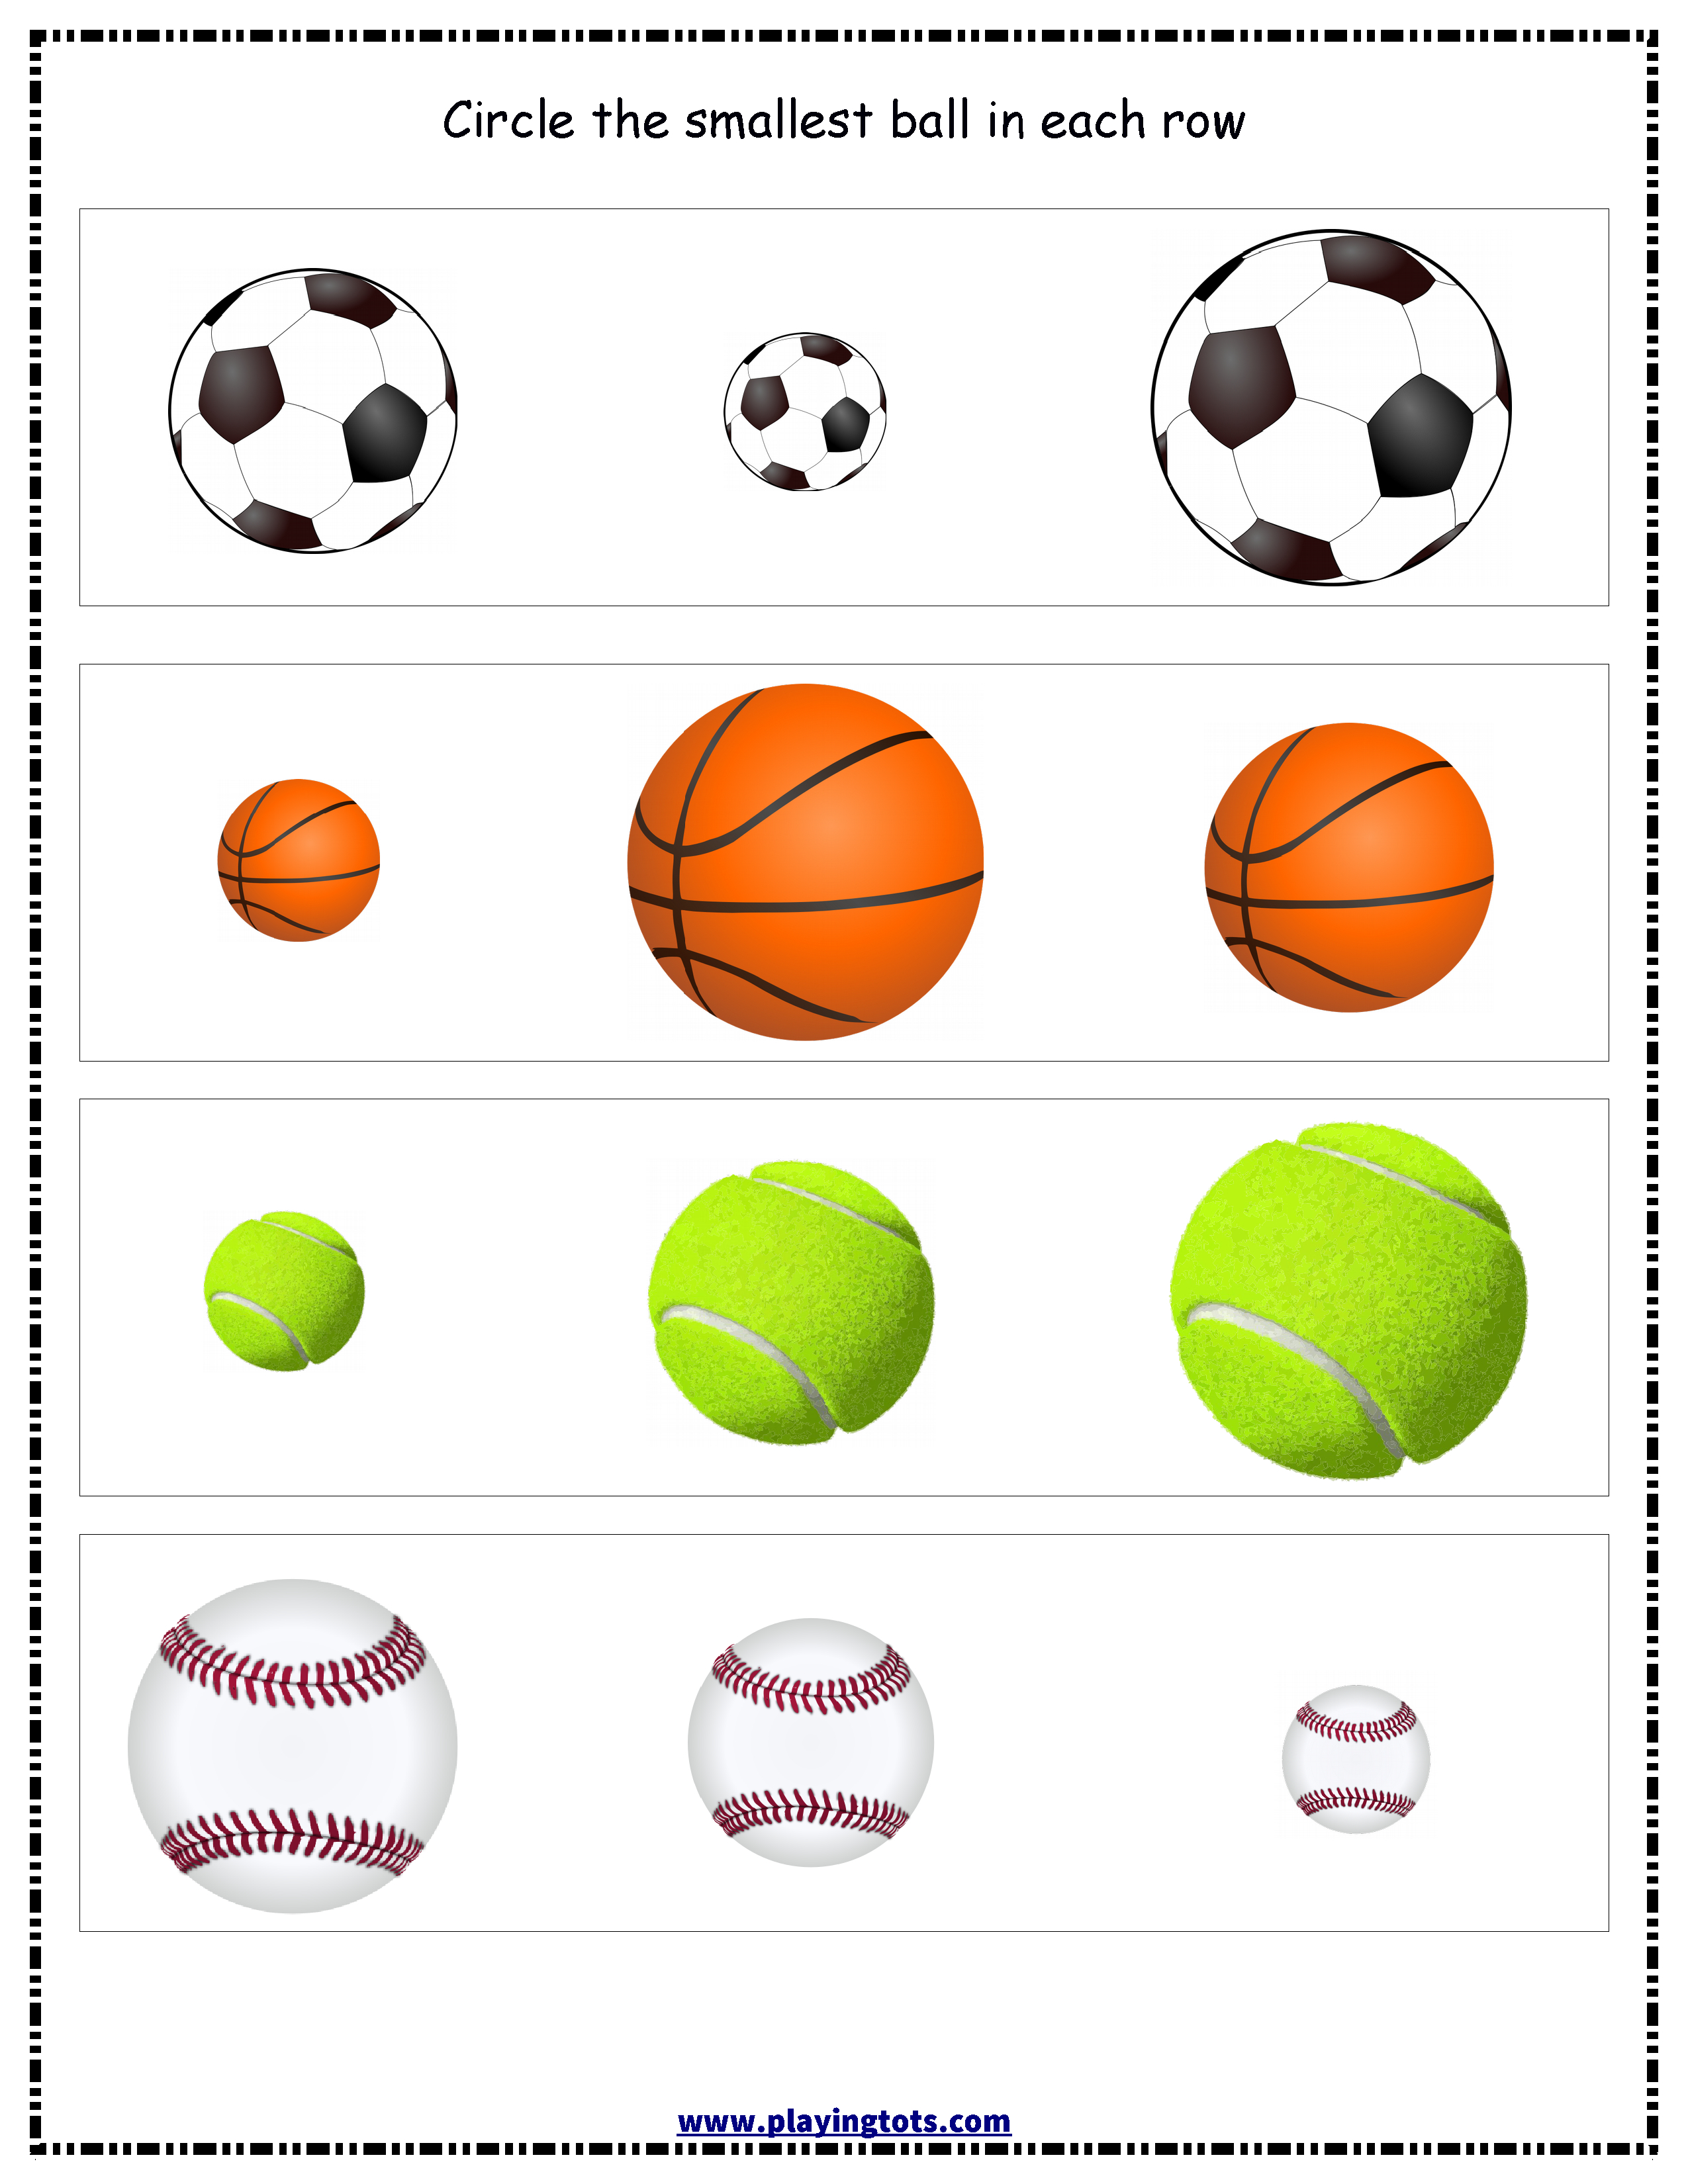 Balls Worksheet Keywords:free,printable,file,folder,toddler - Free Printable File Folders For Preschoolers